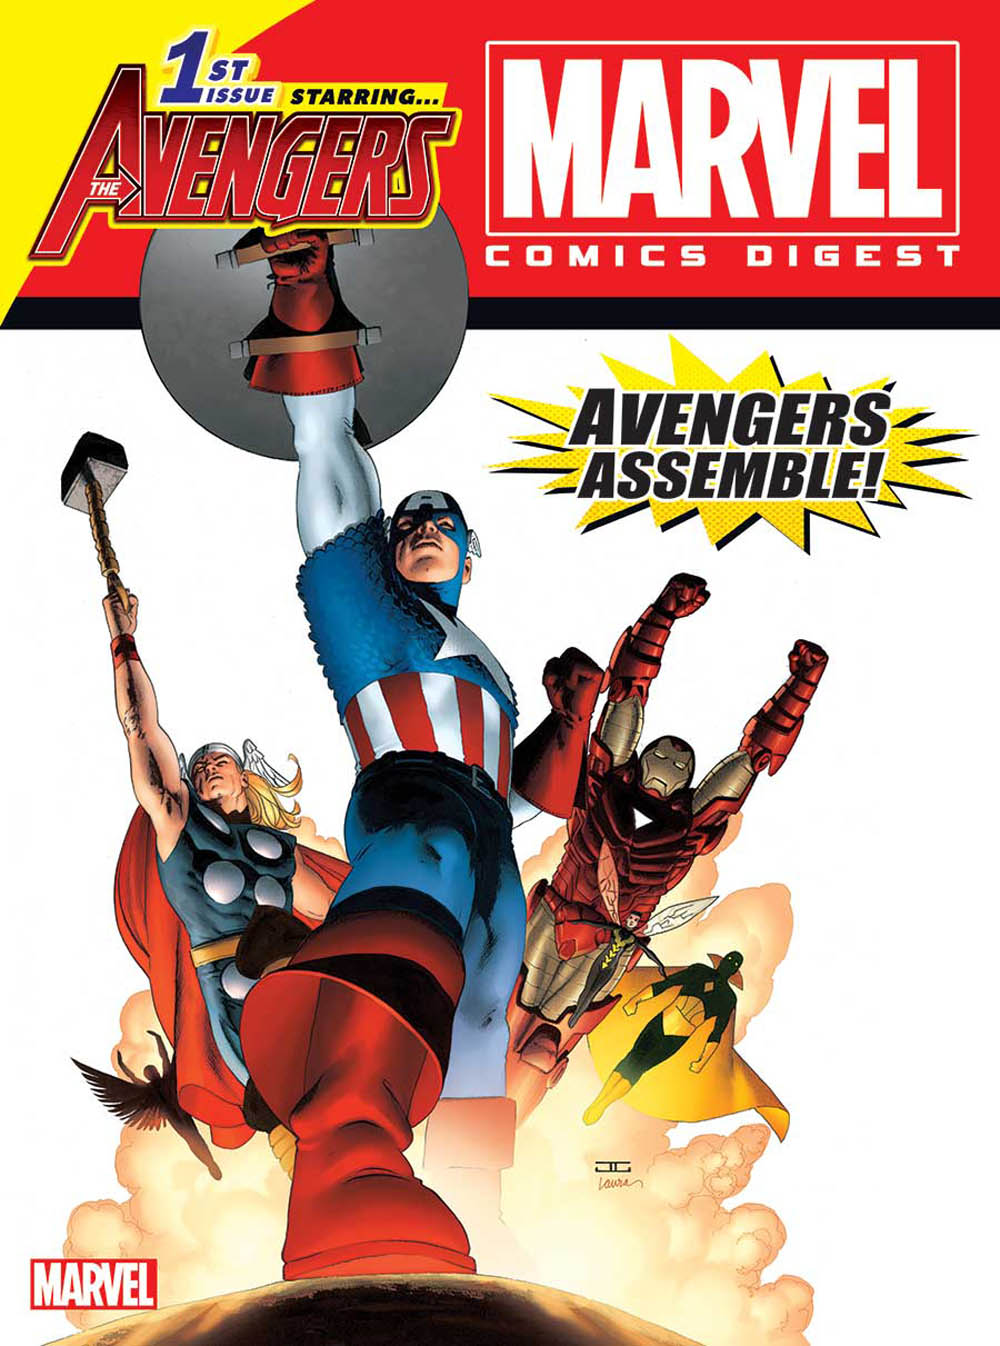 Marvel Comics Best Selling Heroes Are Back In The Ever Popular Digest Format This Second Issue Spotlights Blockbuster Superhero Team Avengers